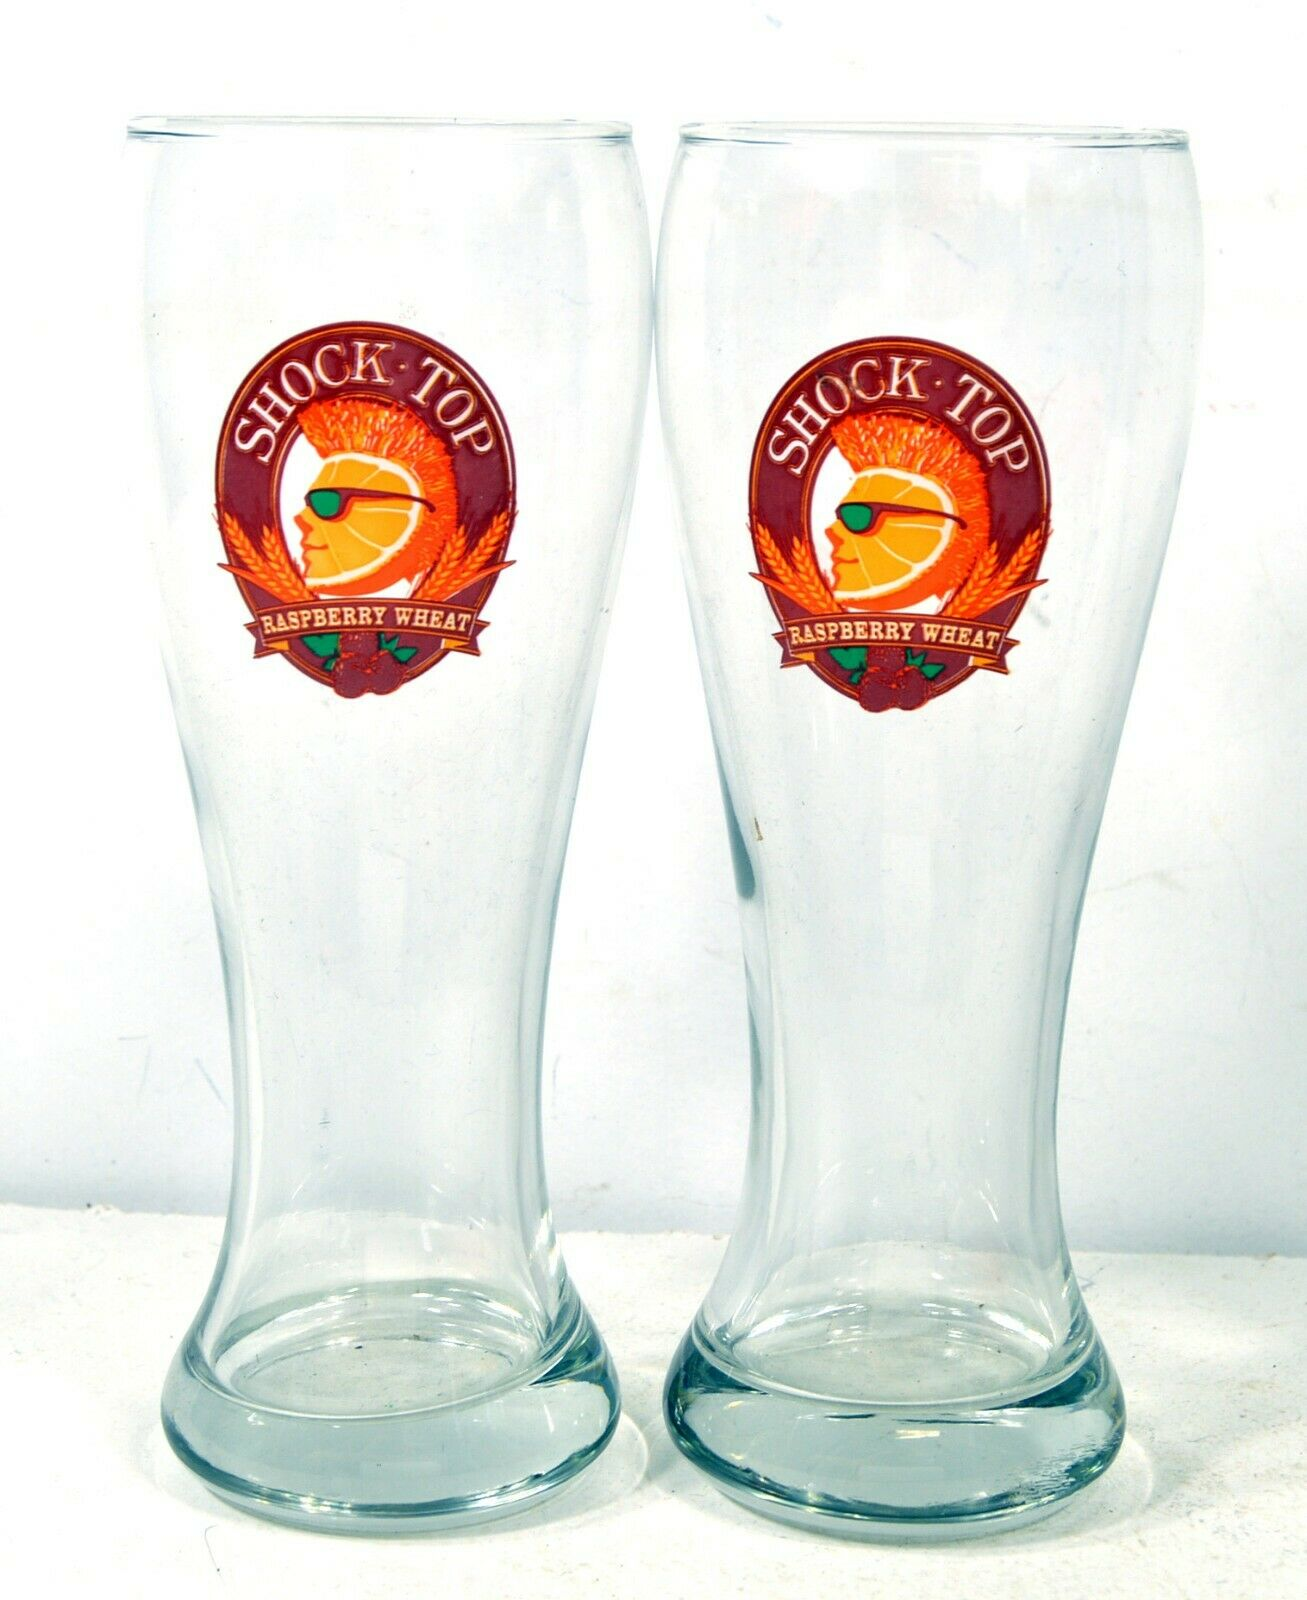 Shock Top Pint Glasses - 2 Beer Cups - 12oz - Raspberry Wheat